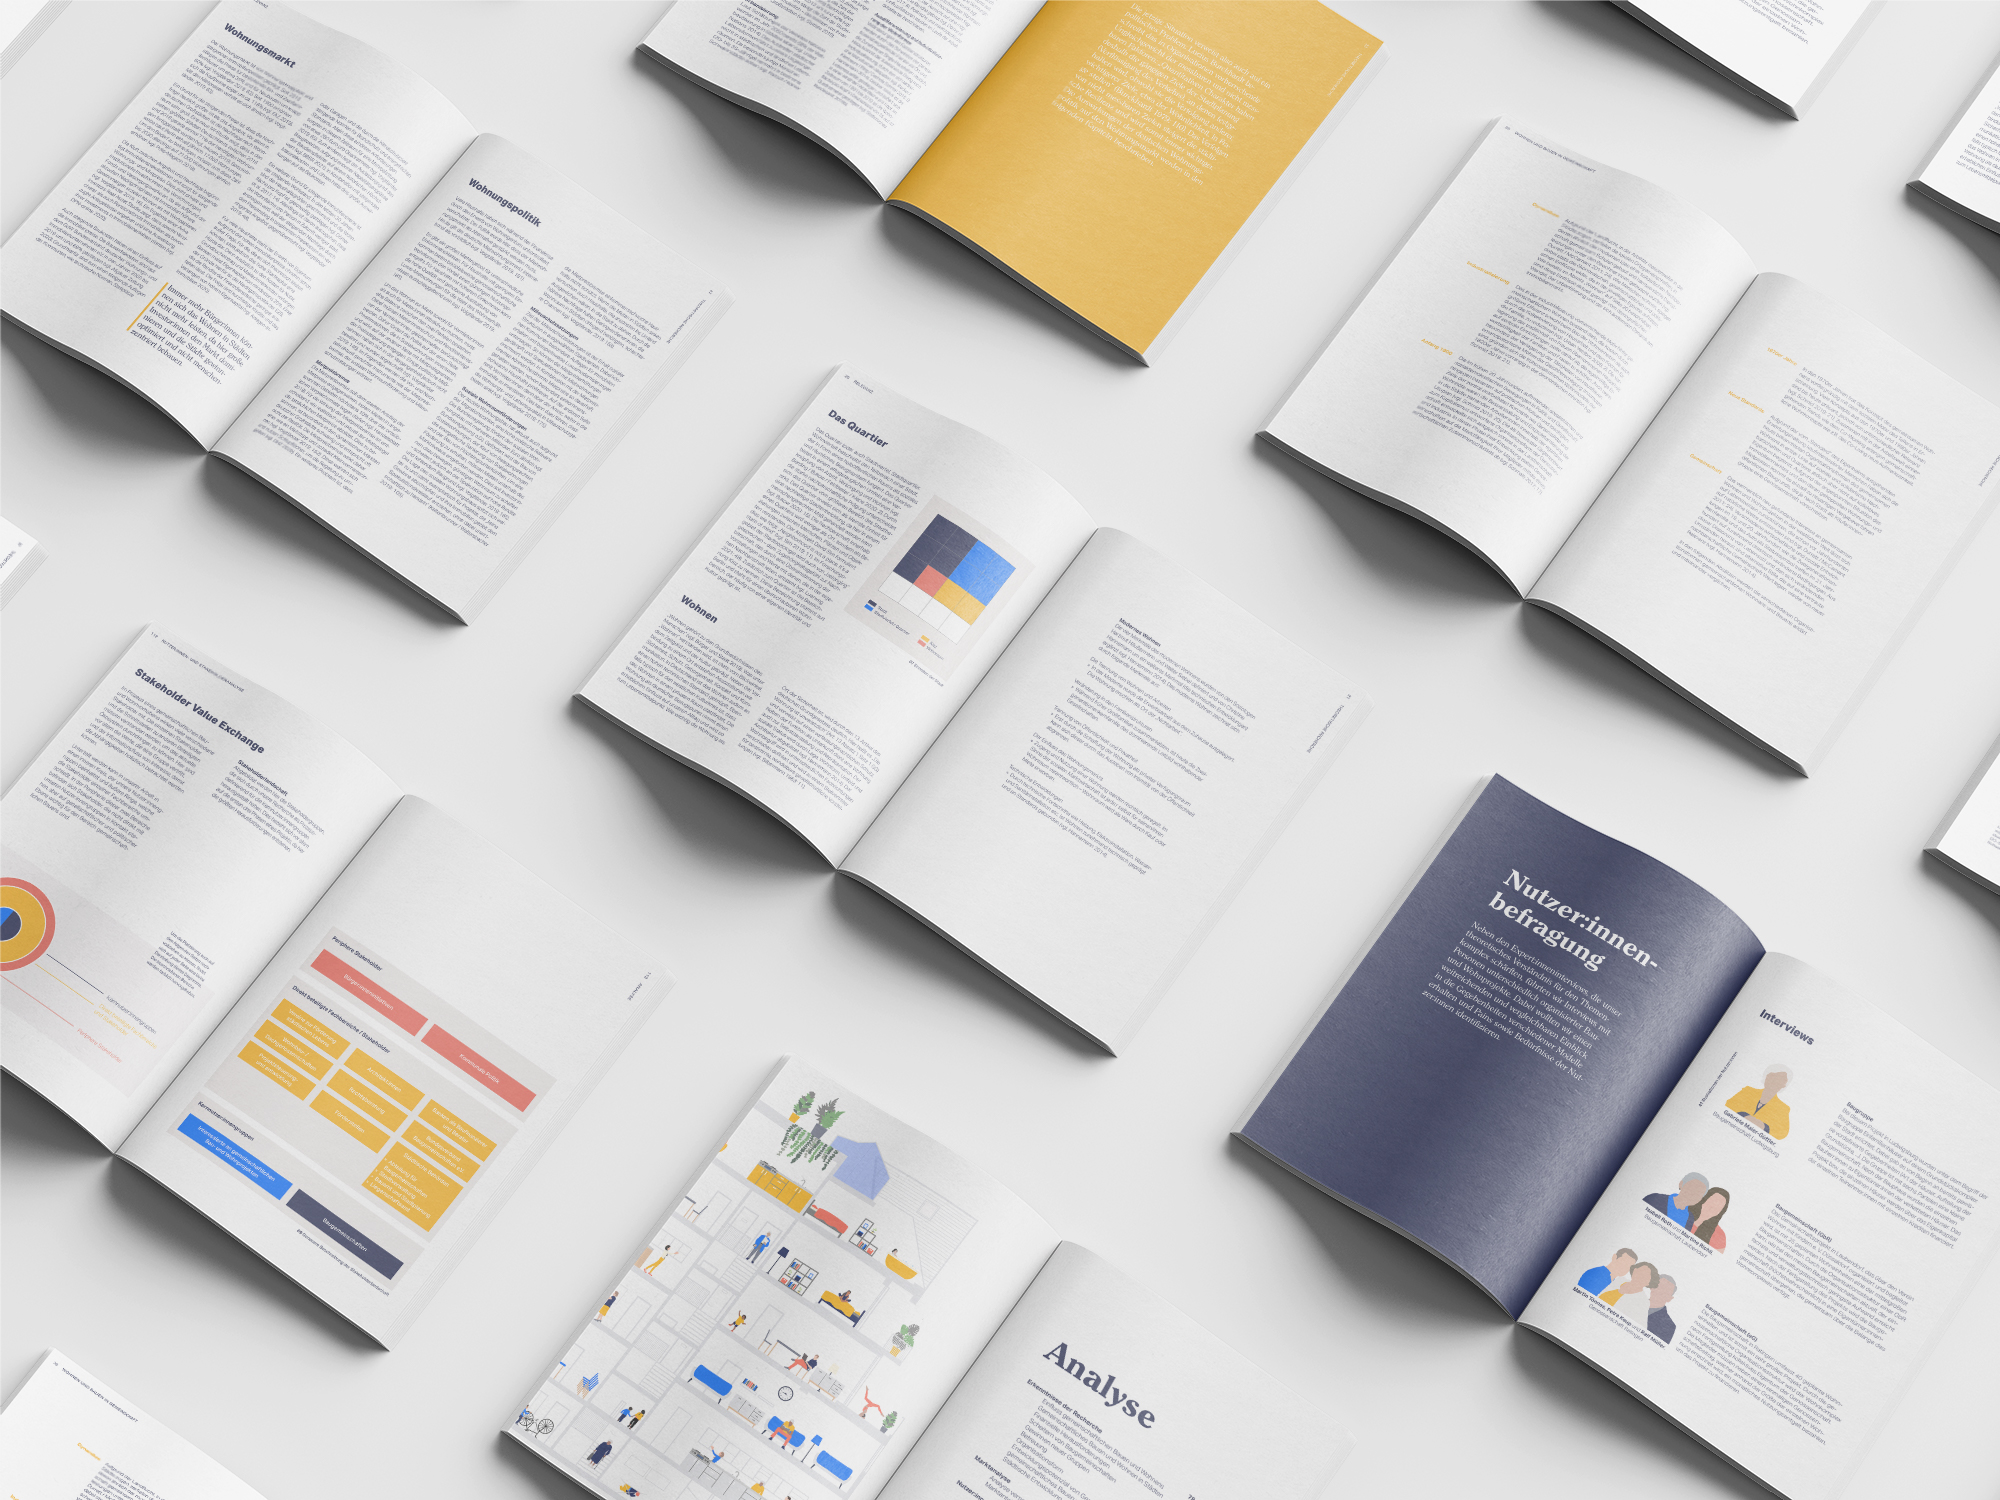 The image shows a flatlay of the printed documentation.